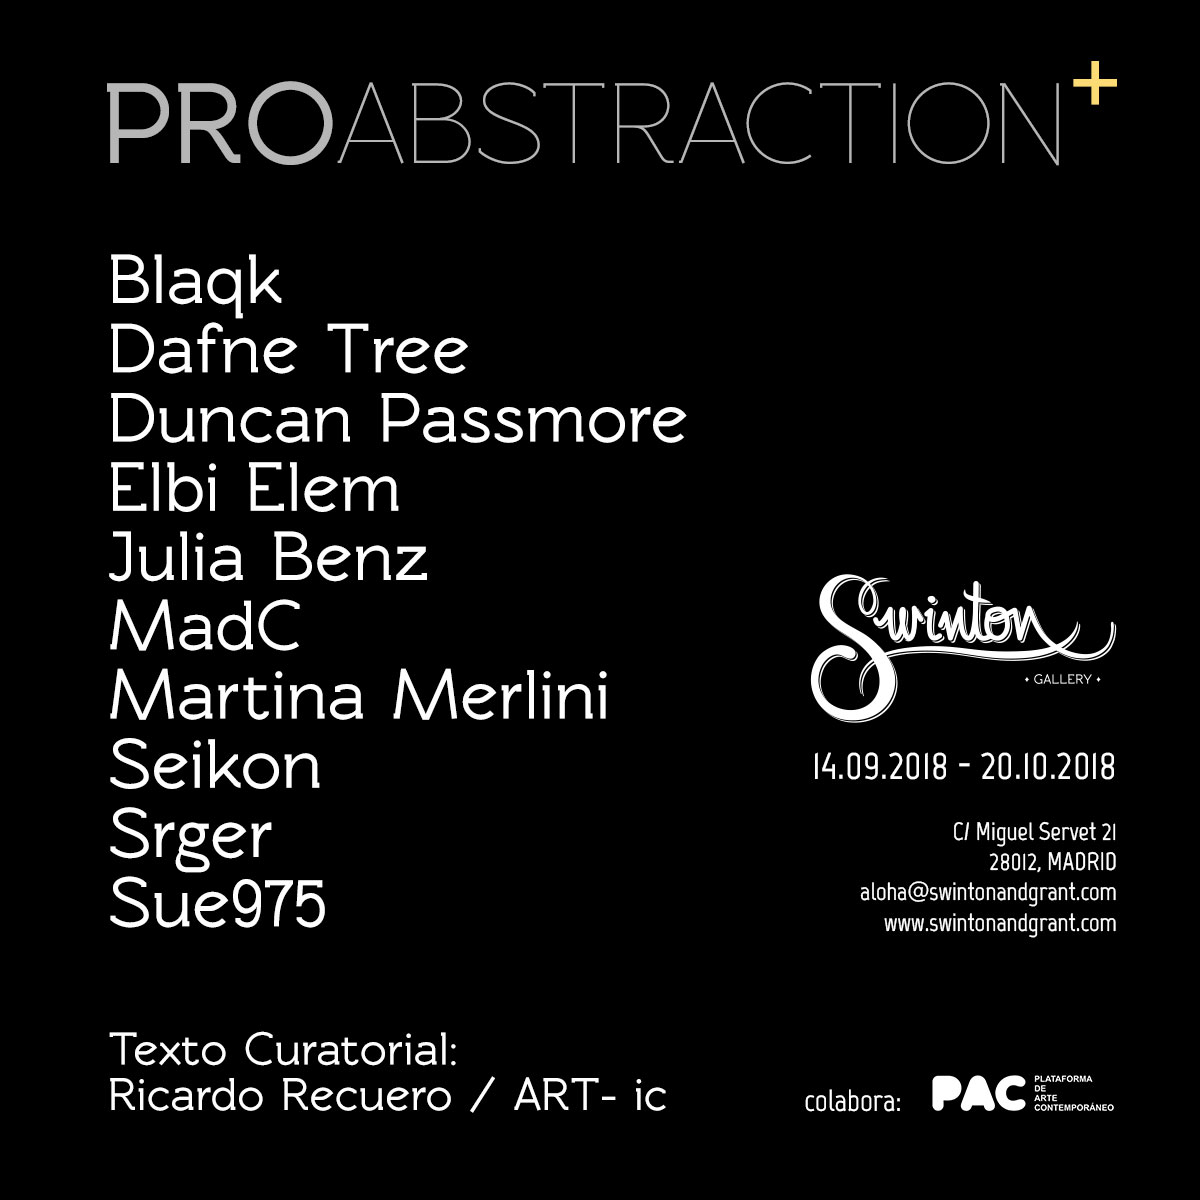 proabstraction-sq